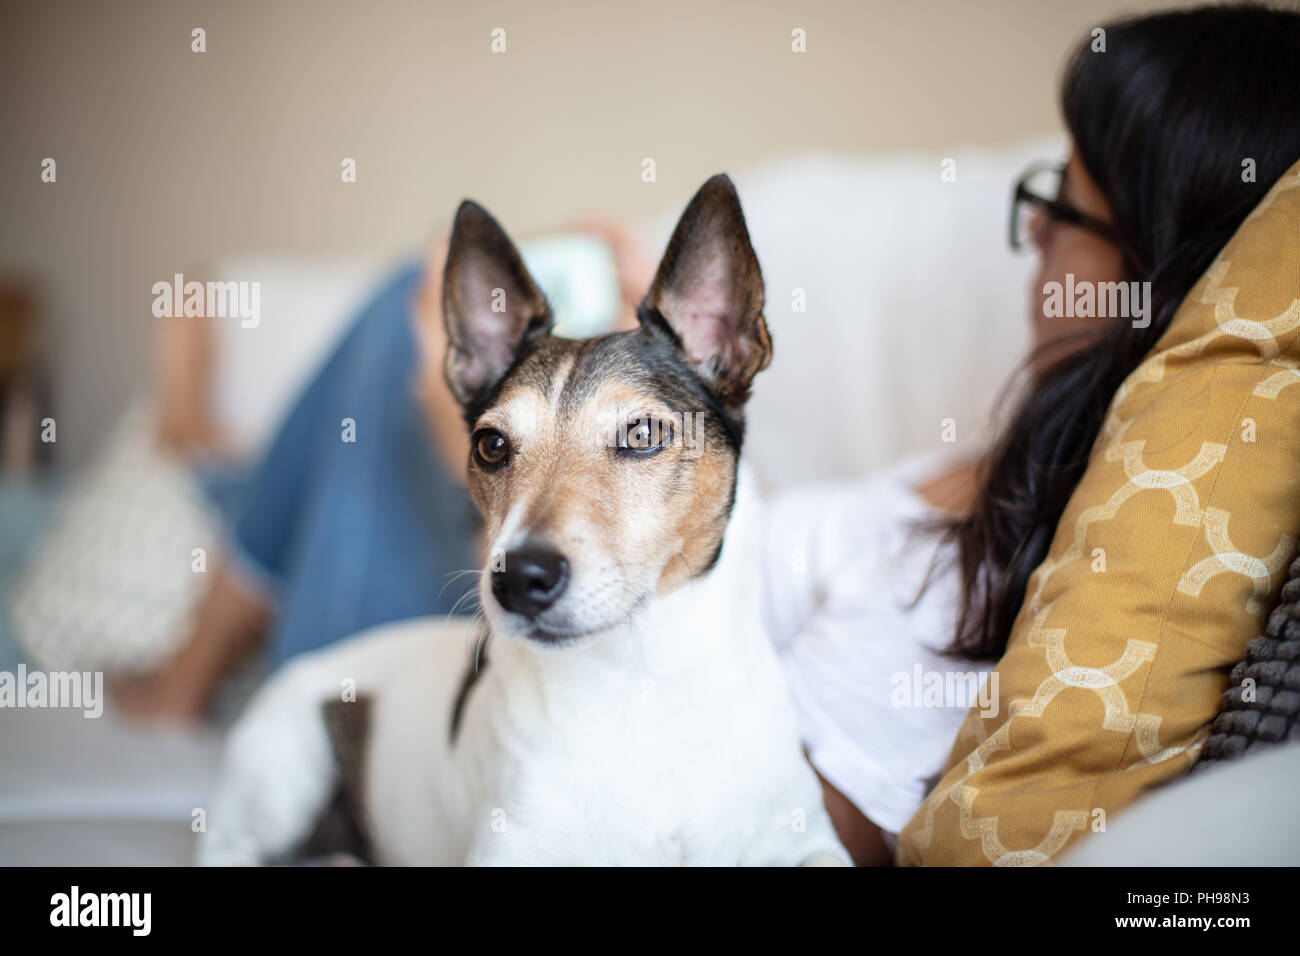 Head portrait of an alert little dog looking off to the side indoors at home as it lies on a sofa alongside a young woman - Stock Image